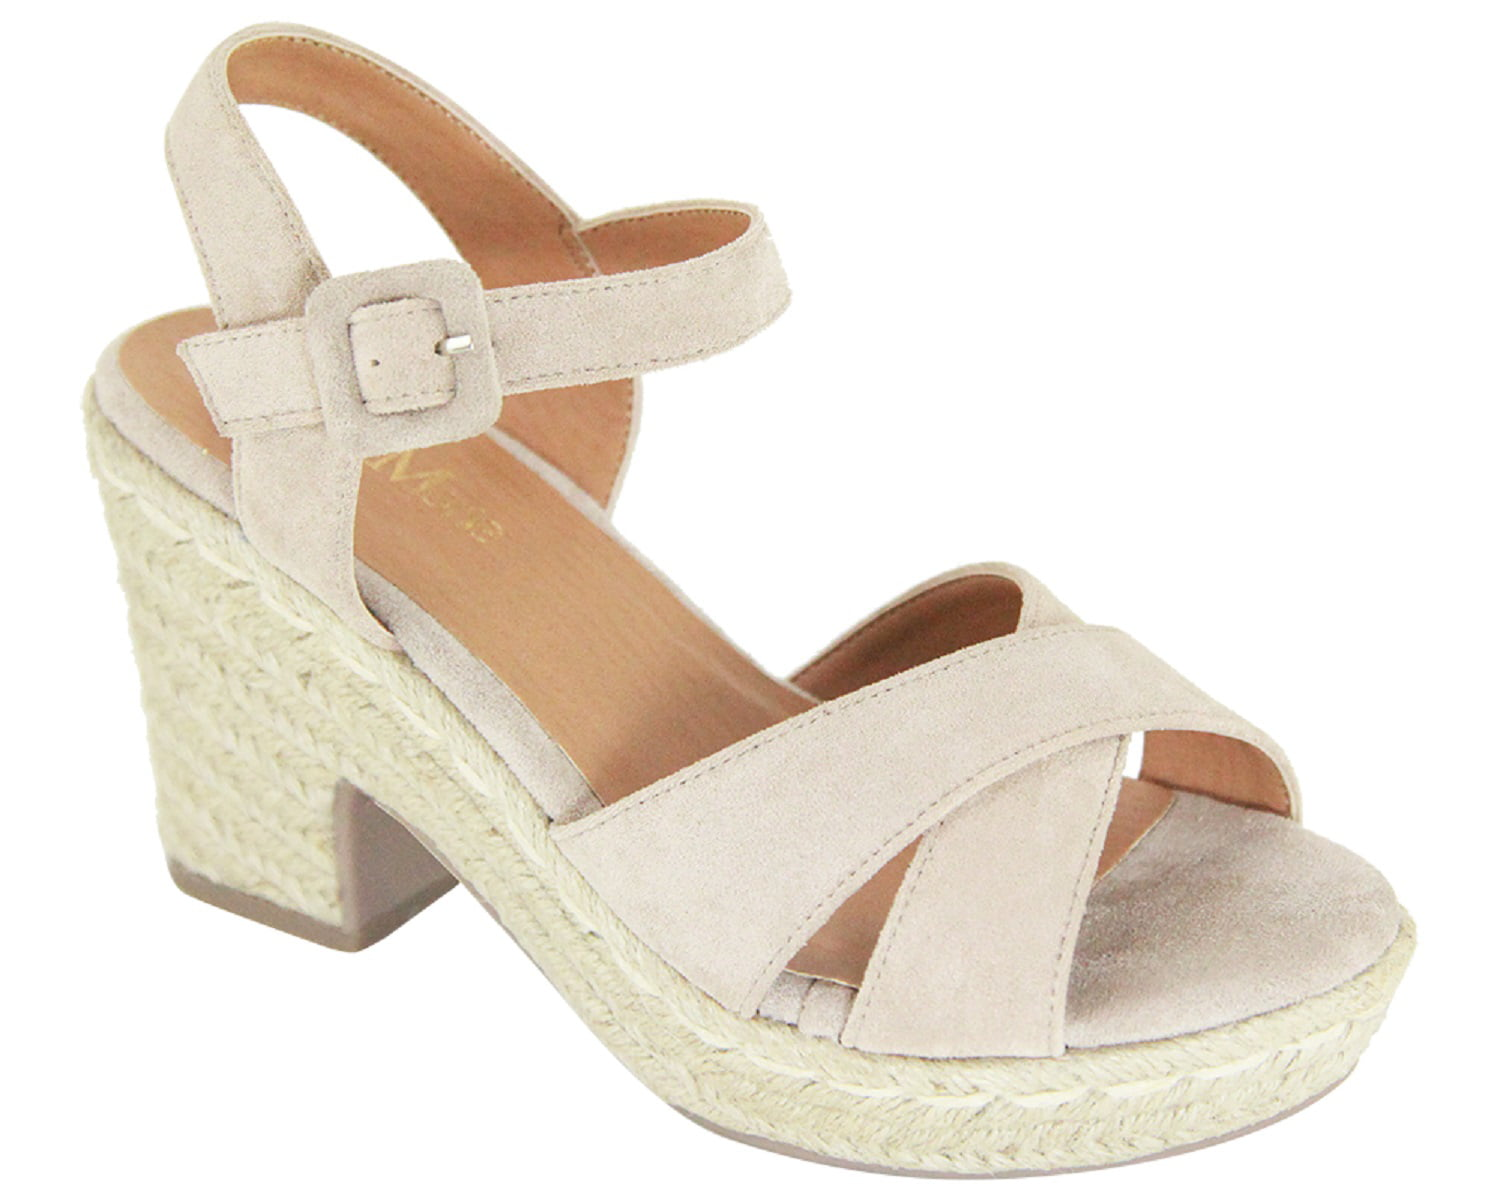 a226fb36028 Deck-3 Women Strappy Mary Jane Espadrille Platform Low Block Heel Open Toe  Sandal Yellow - Walmart.com